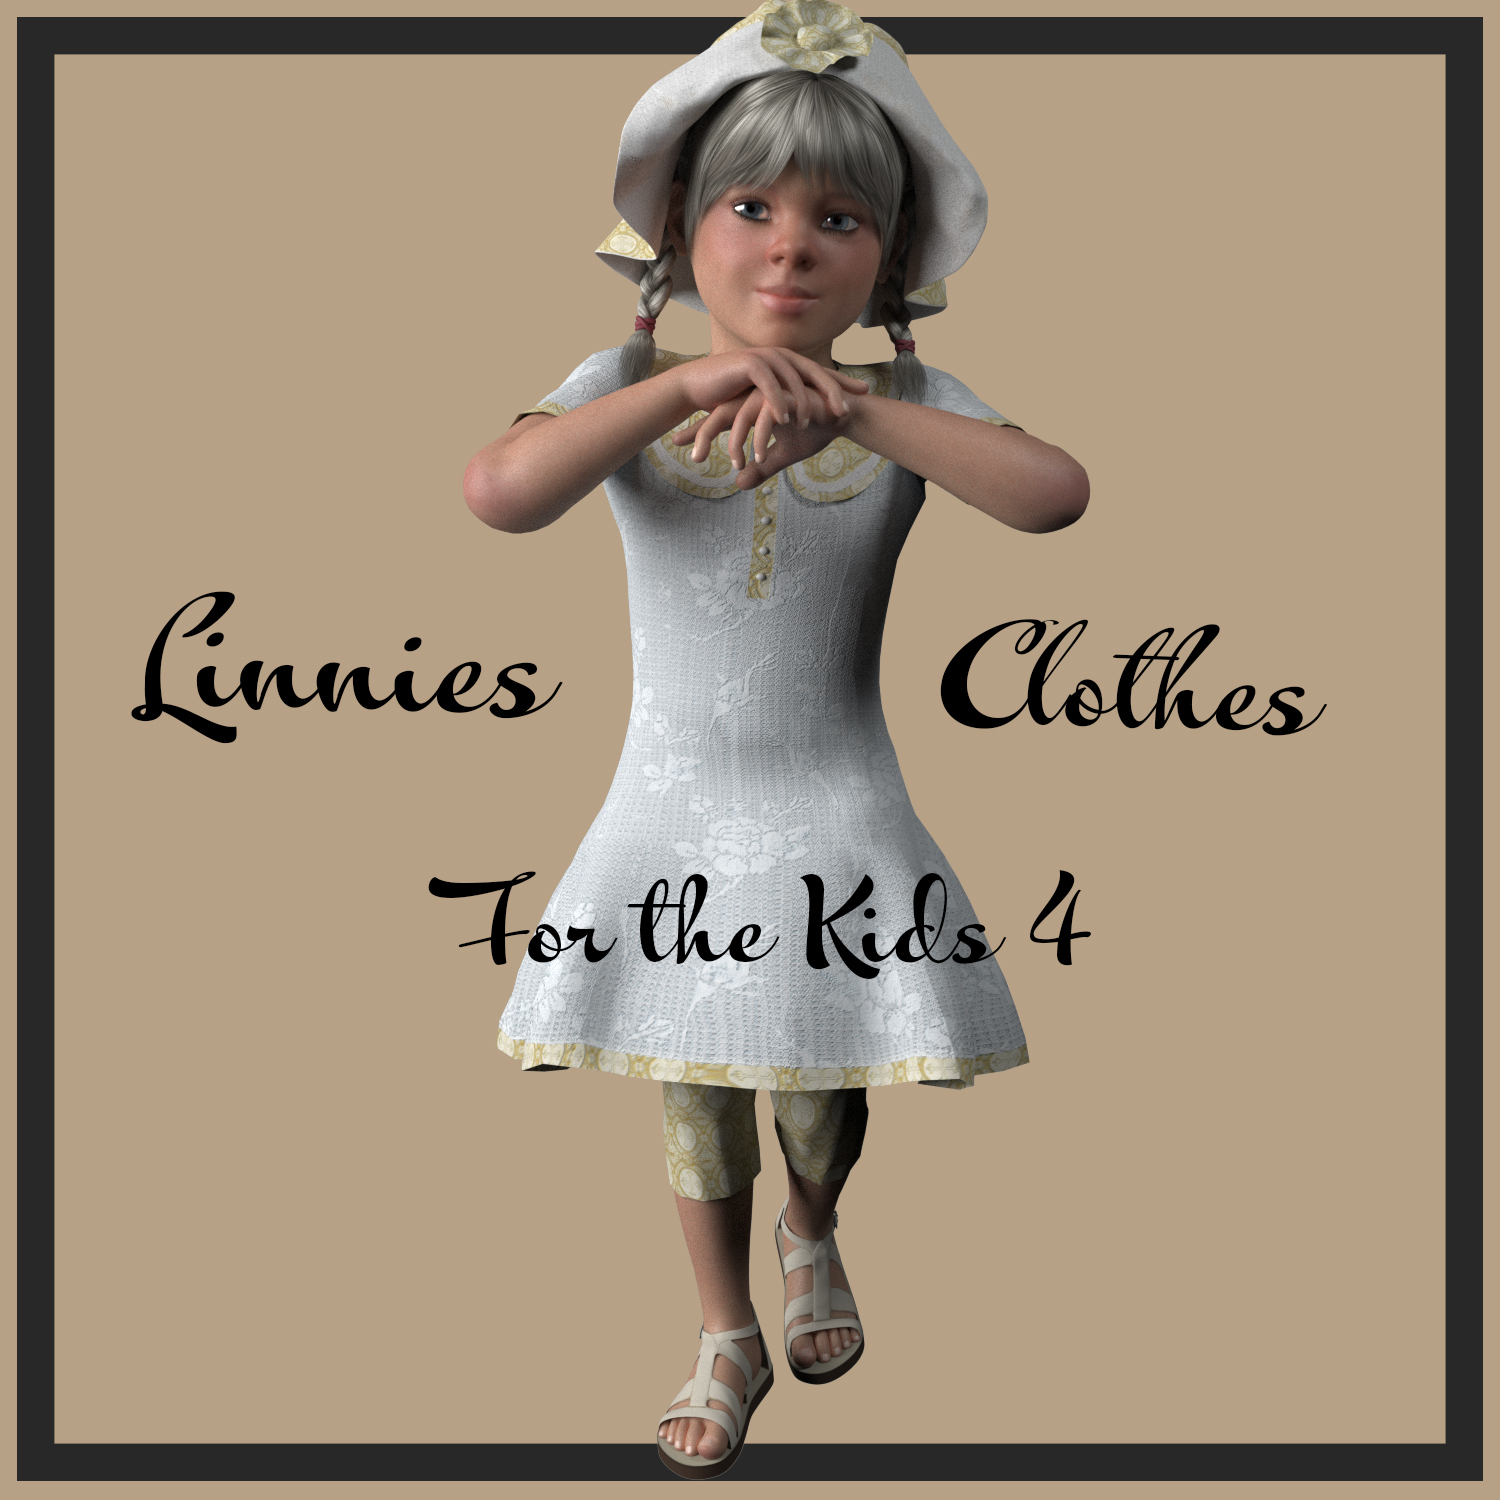 Linnies Clothes for Kids 4 by pixpax